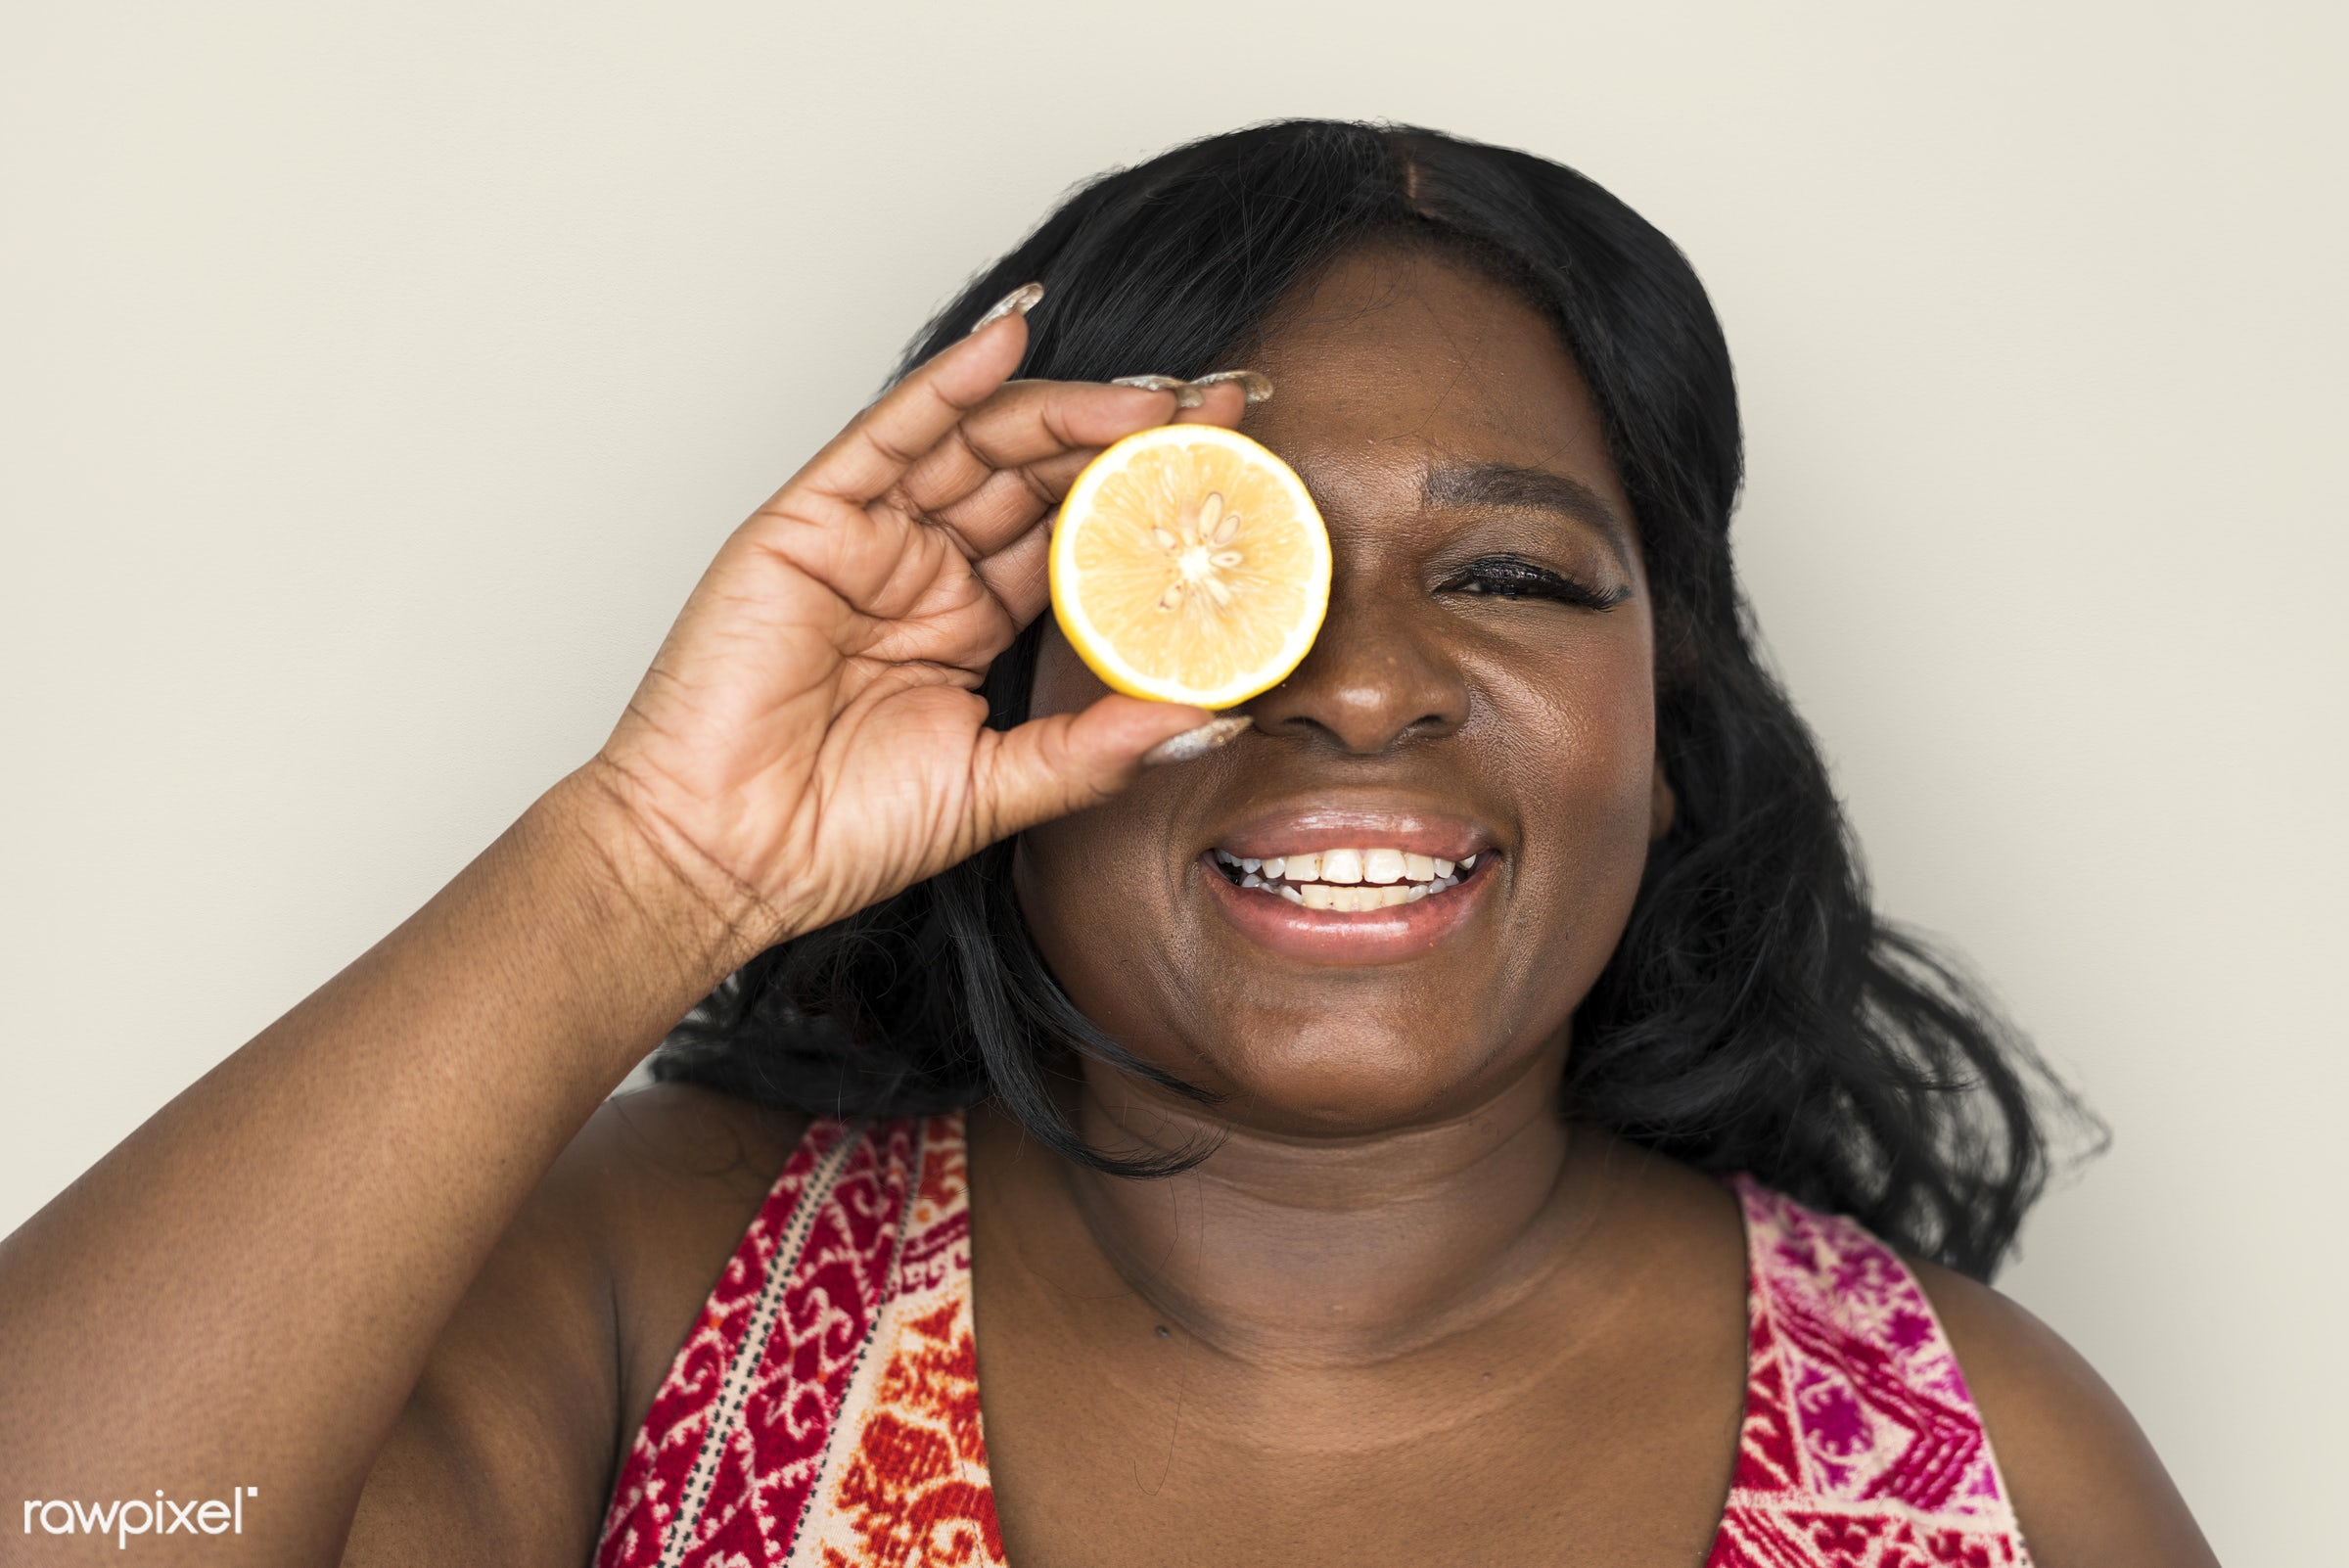 studio, expression, person, people, eyes, cover, woman, cheerful, smiling, black, isolated, fruit, african descent, human...